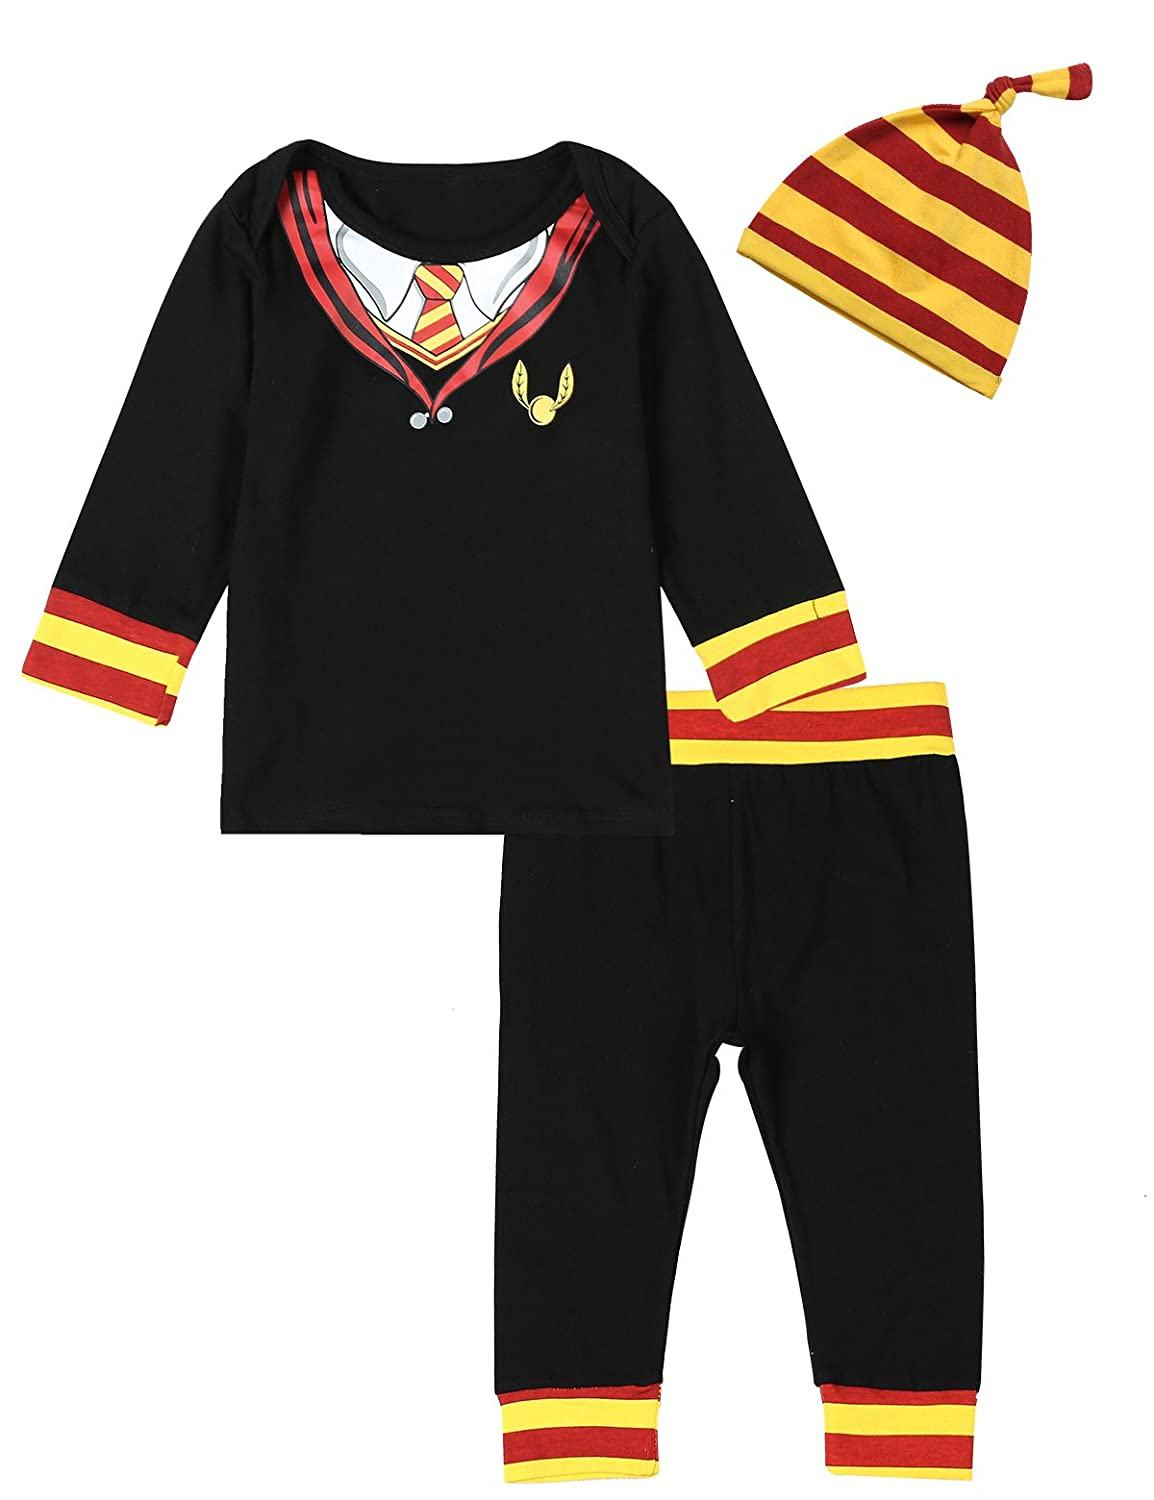 3PCS Baby Boys Girls Outfit Set Snuggle This Muggle Romper + Pants + Hat